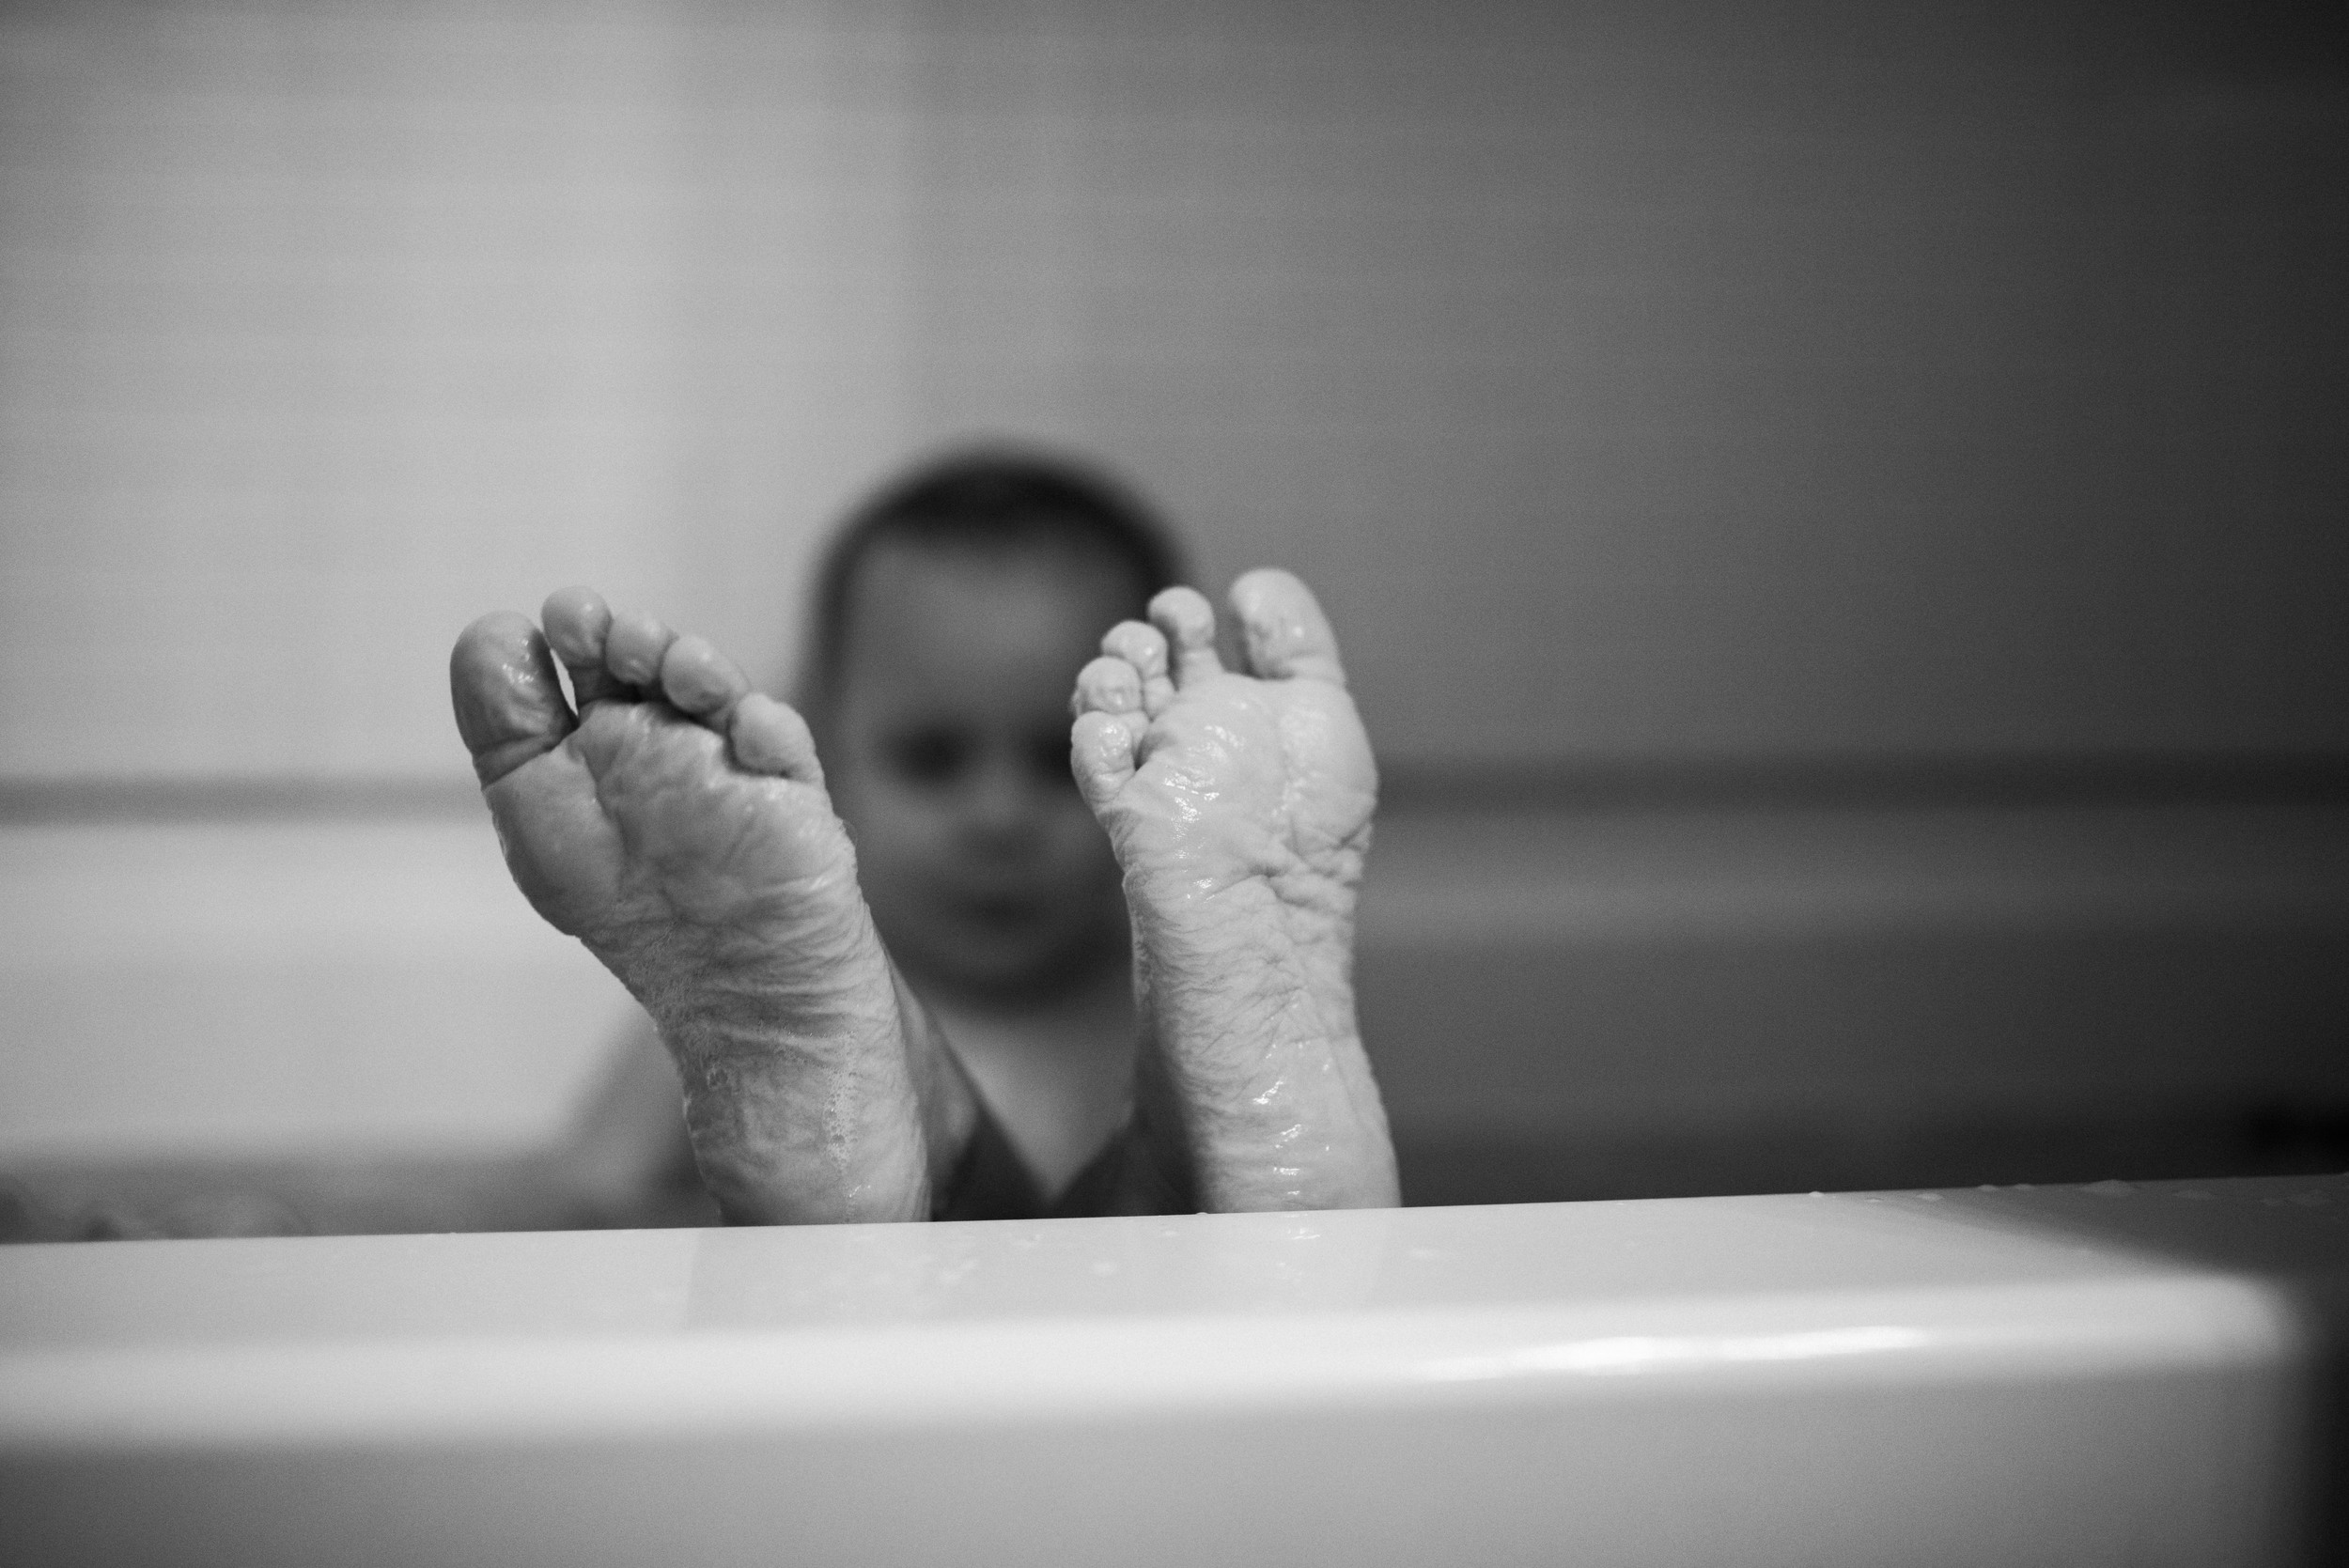 little boy with wrinkly piggies toes in the tub